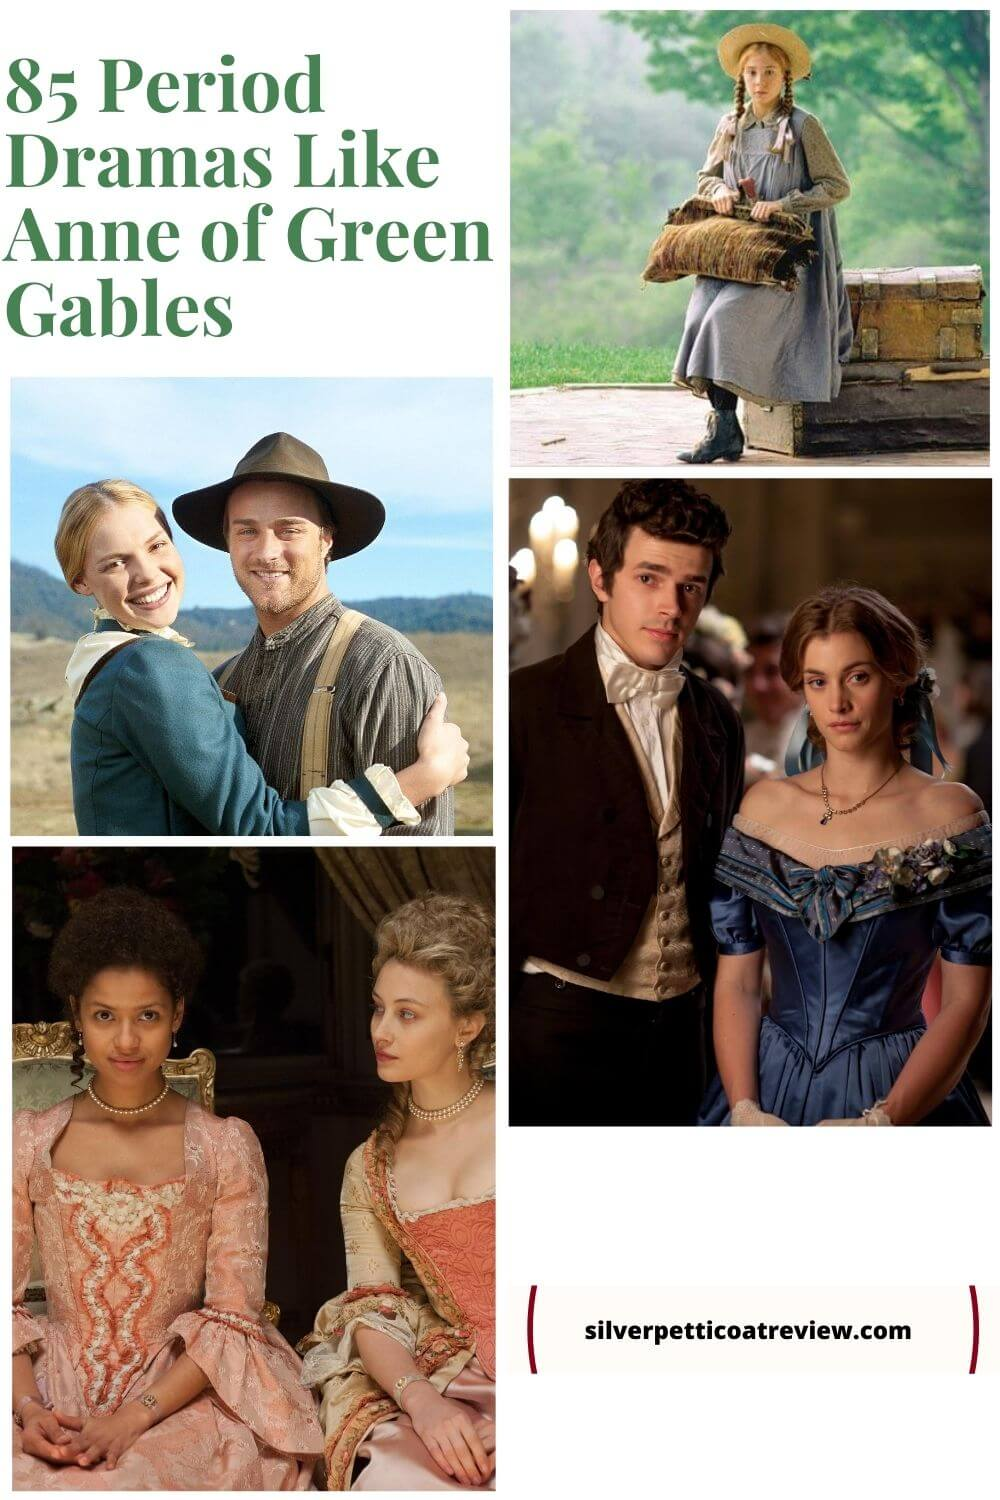 85 Period Dramas Like Anne of Green Gables